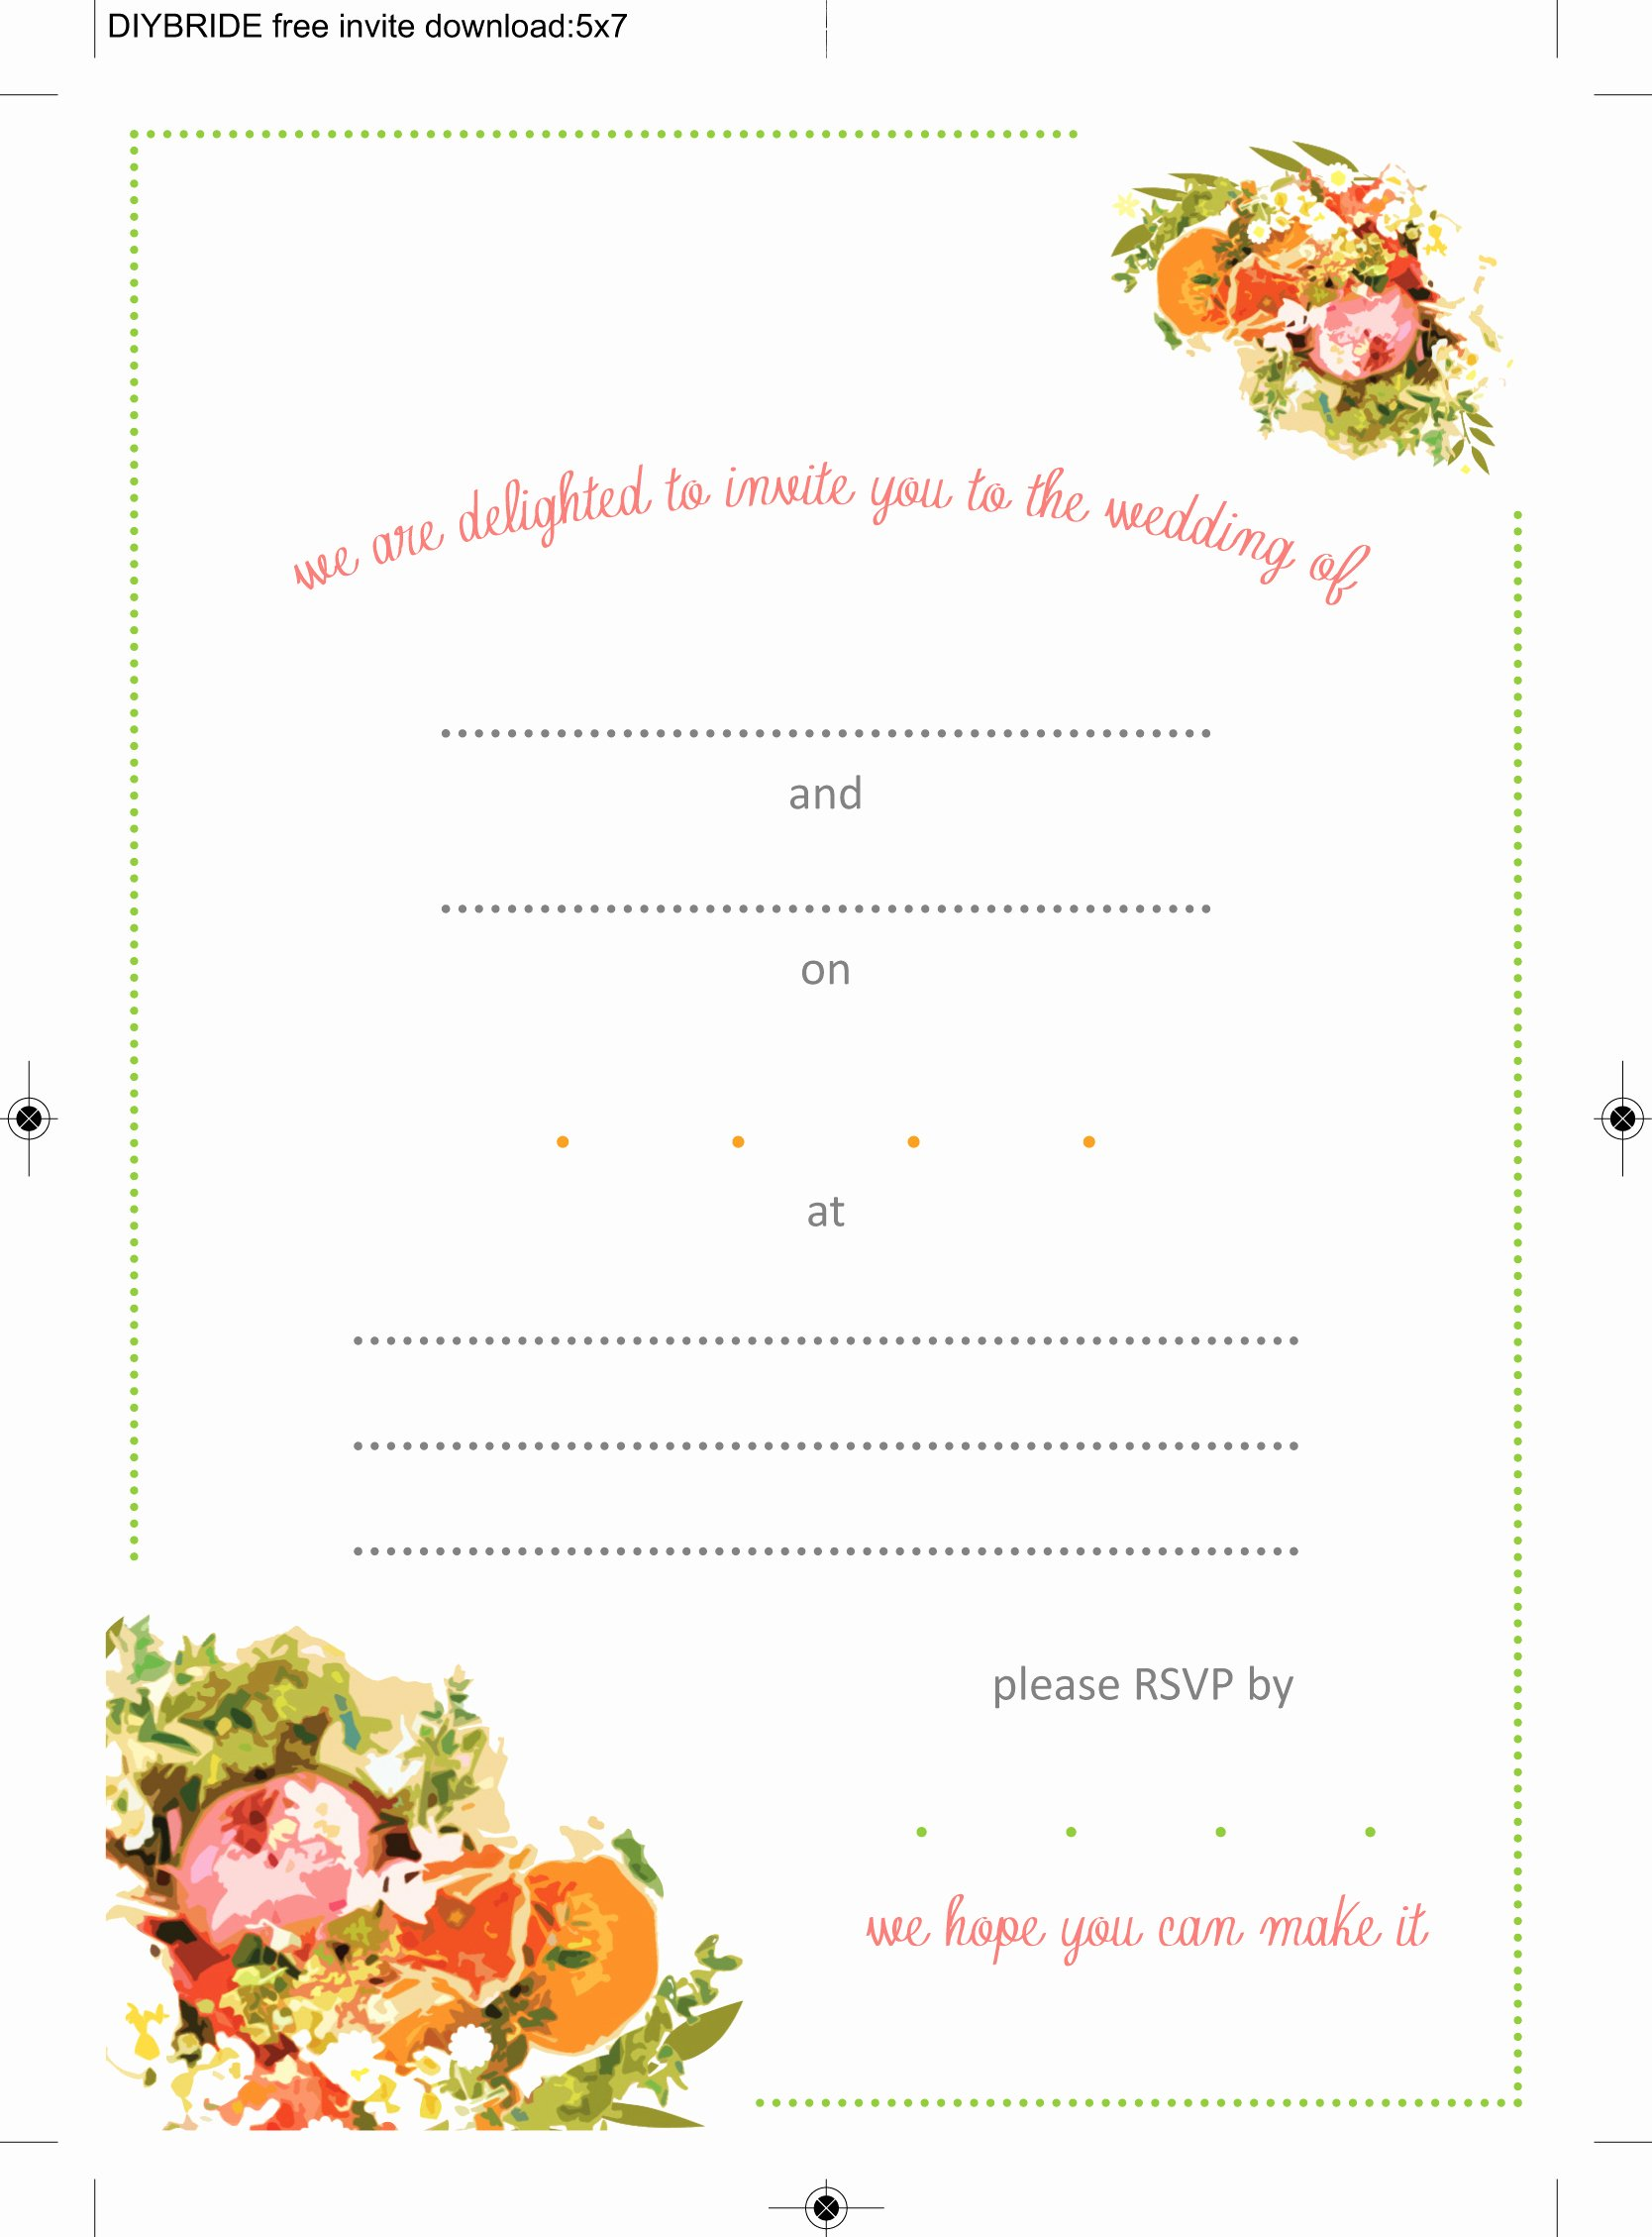 Wedding Invitation Word Template Luxury Wedding Invitation Templates that are Cute and Easy to